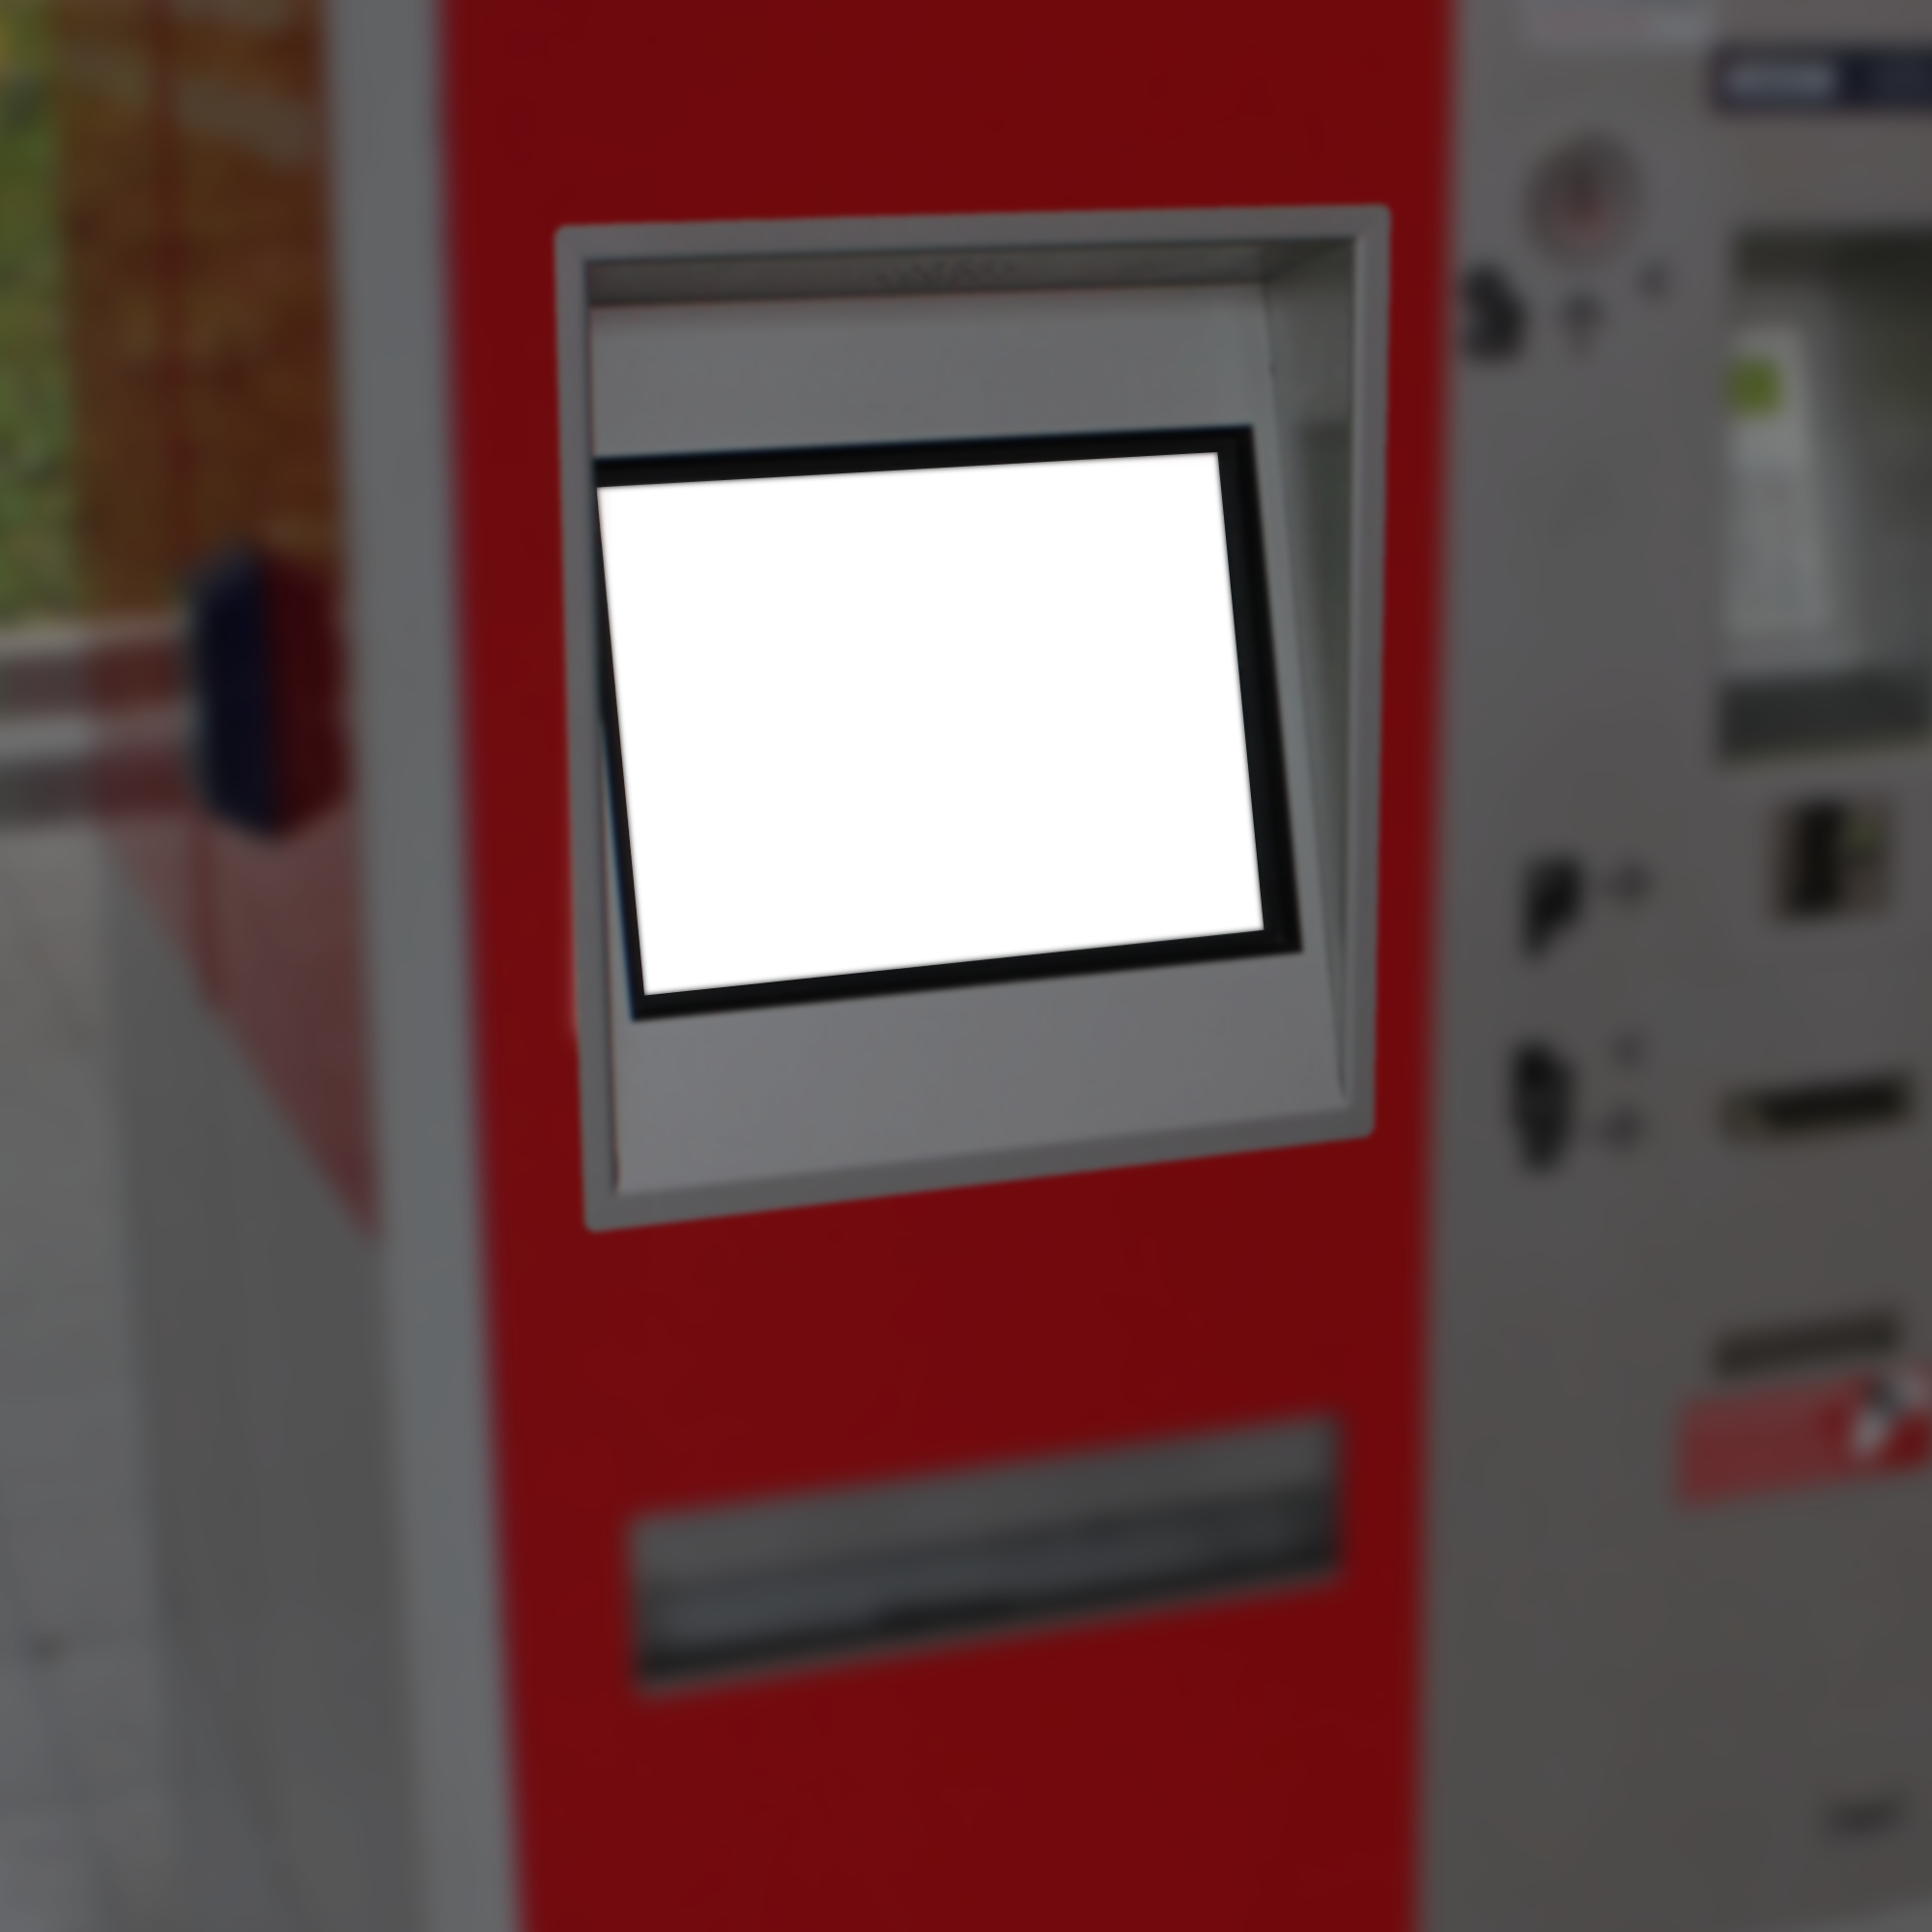 Db Kartenautomat.M A U R E R Interface Design